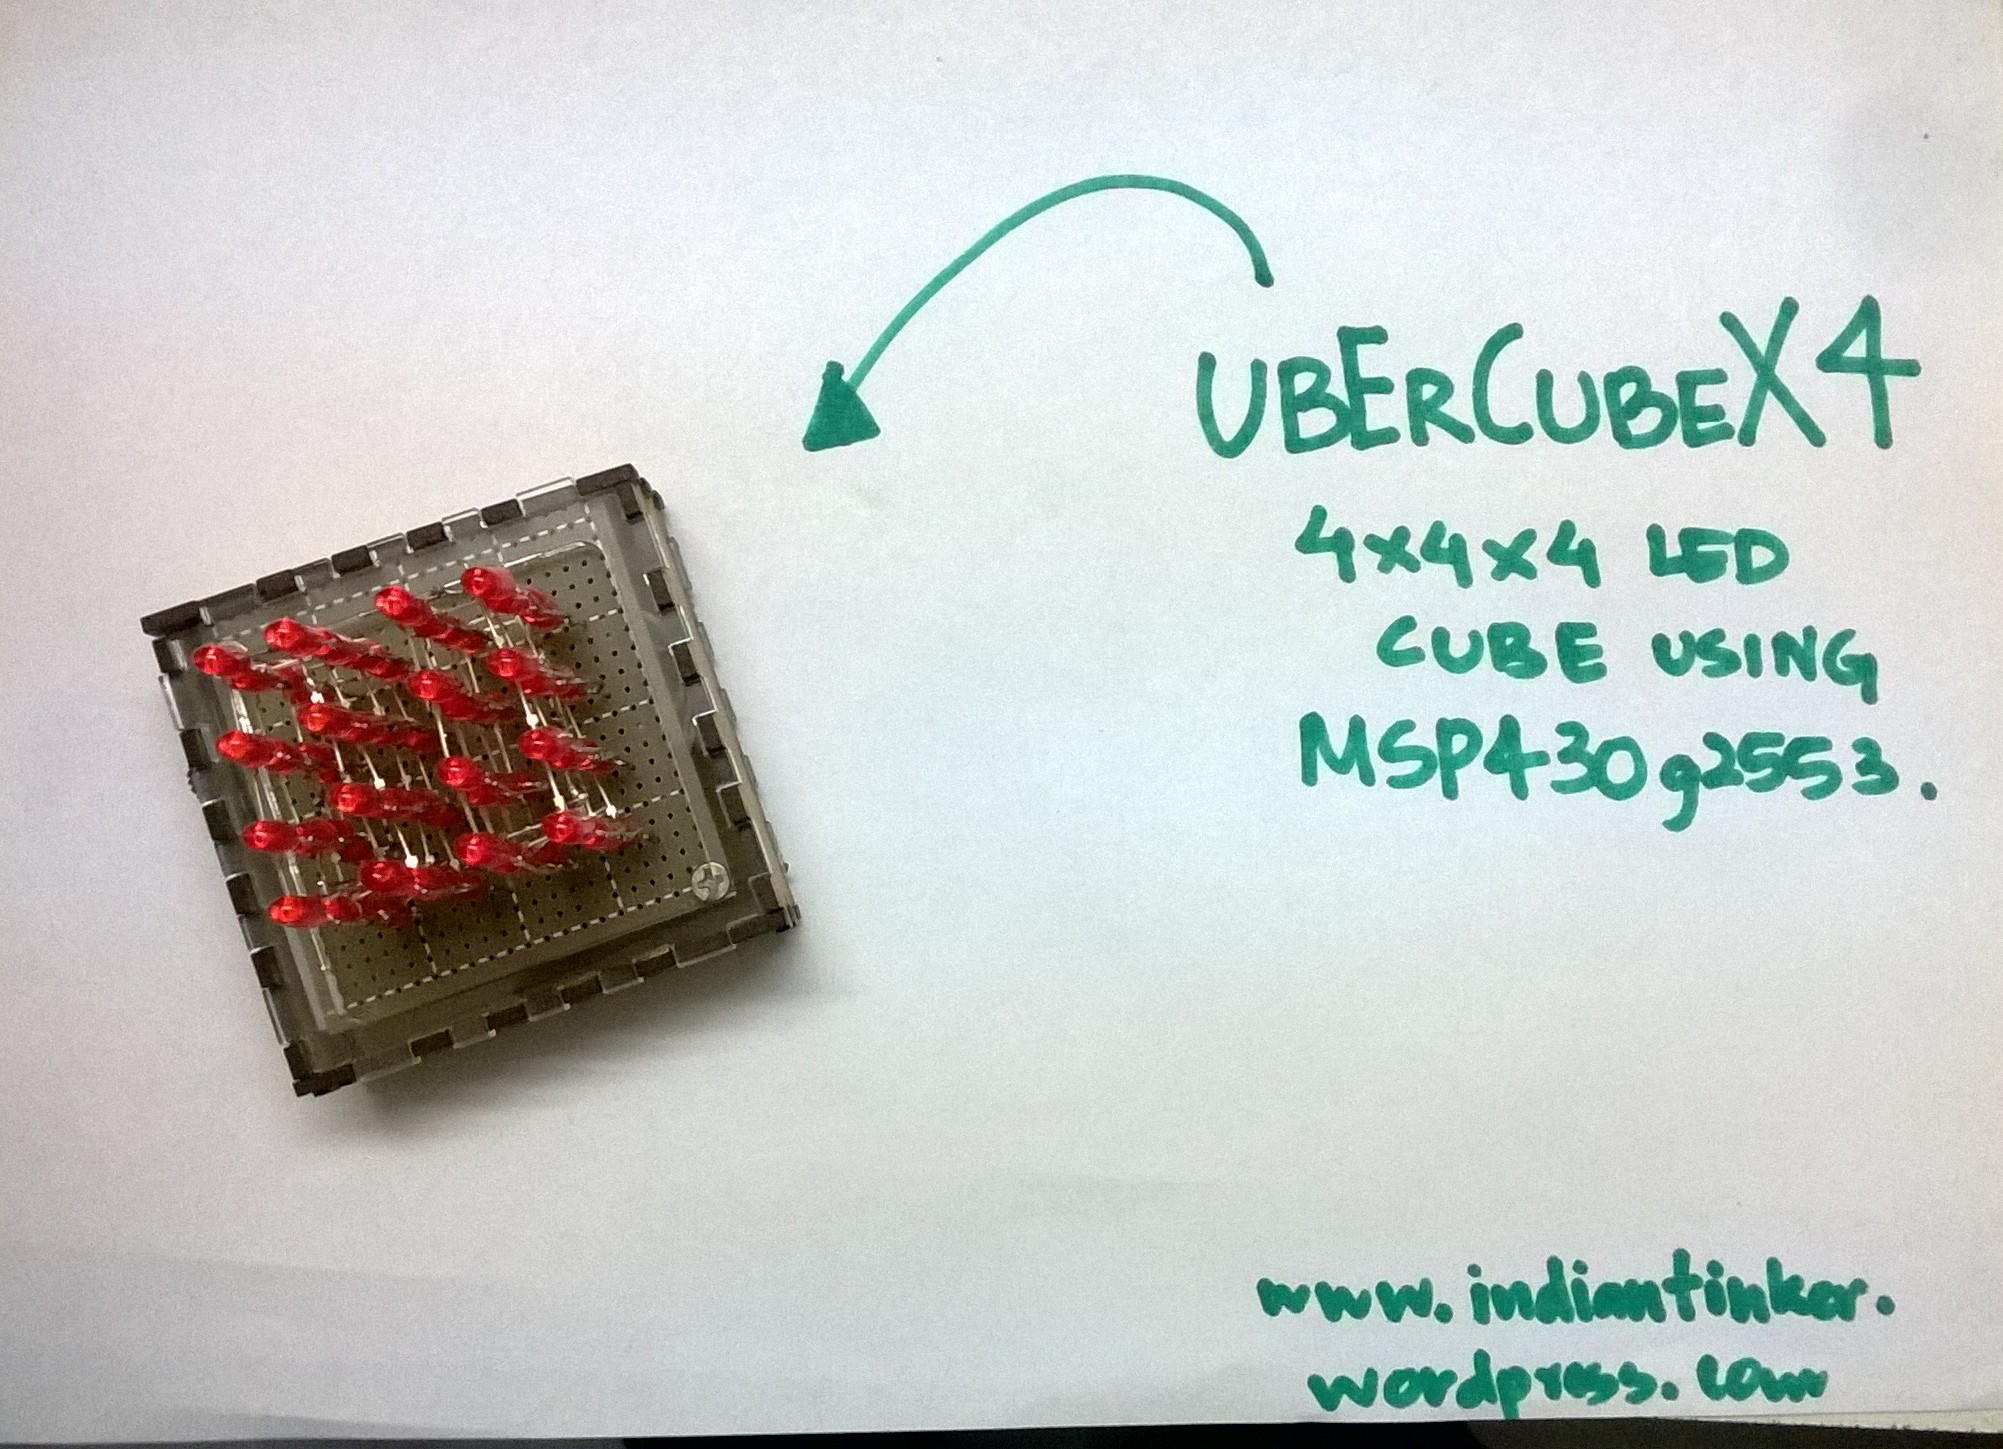 UberCube X4- The Benchtop LED Cube